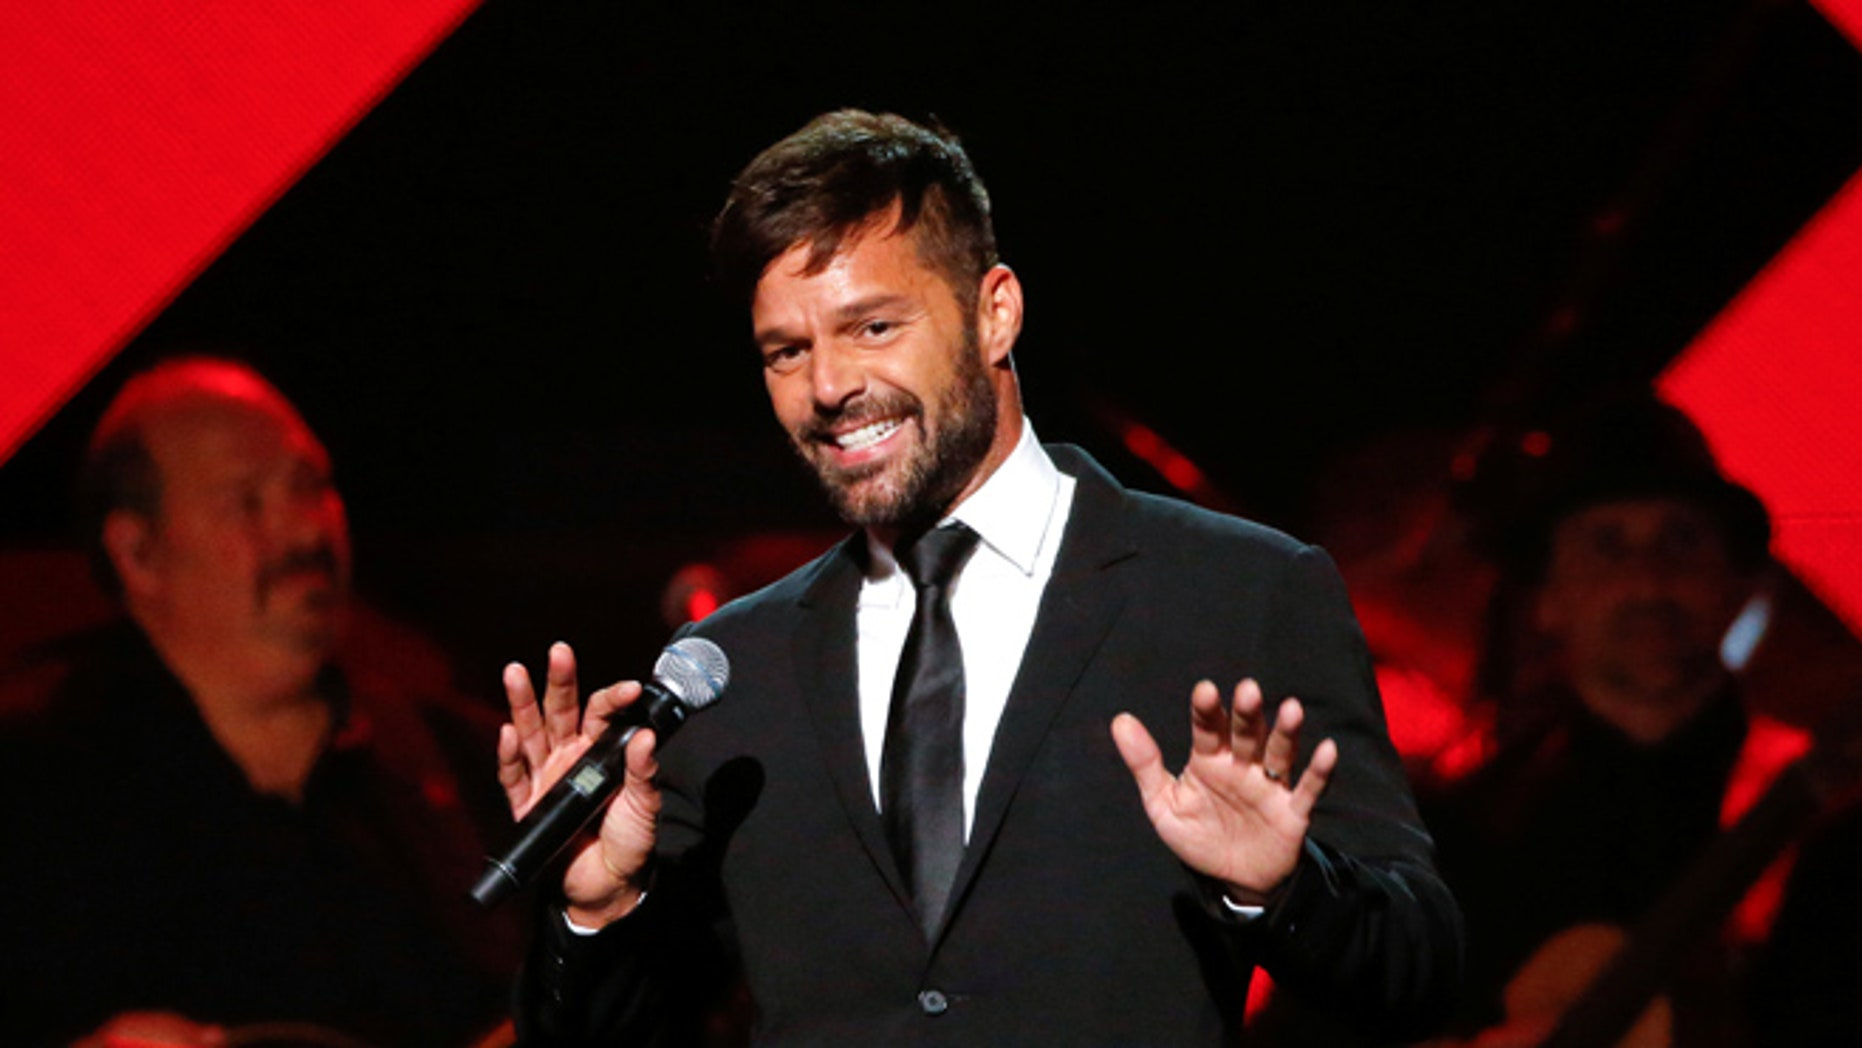 Ricky Martin thanked fans for their support following the hospitalization of his father.